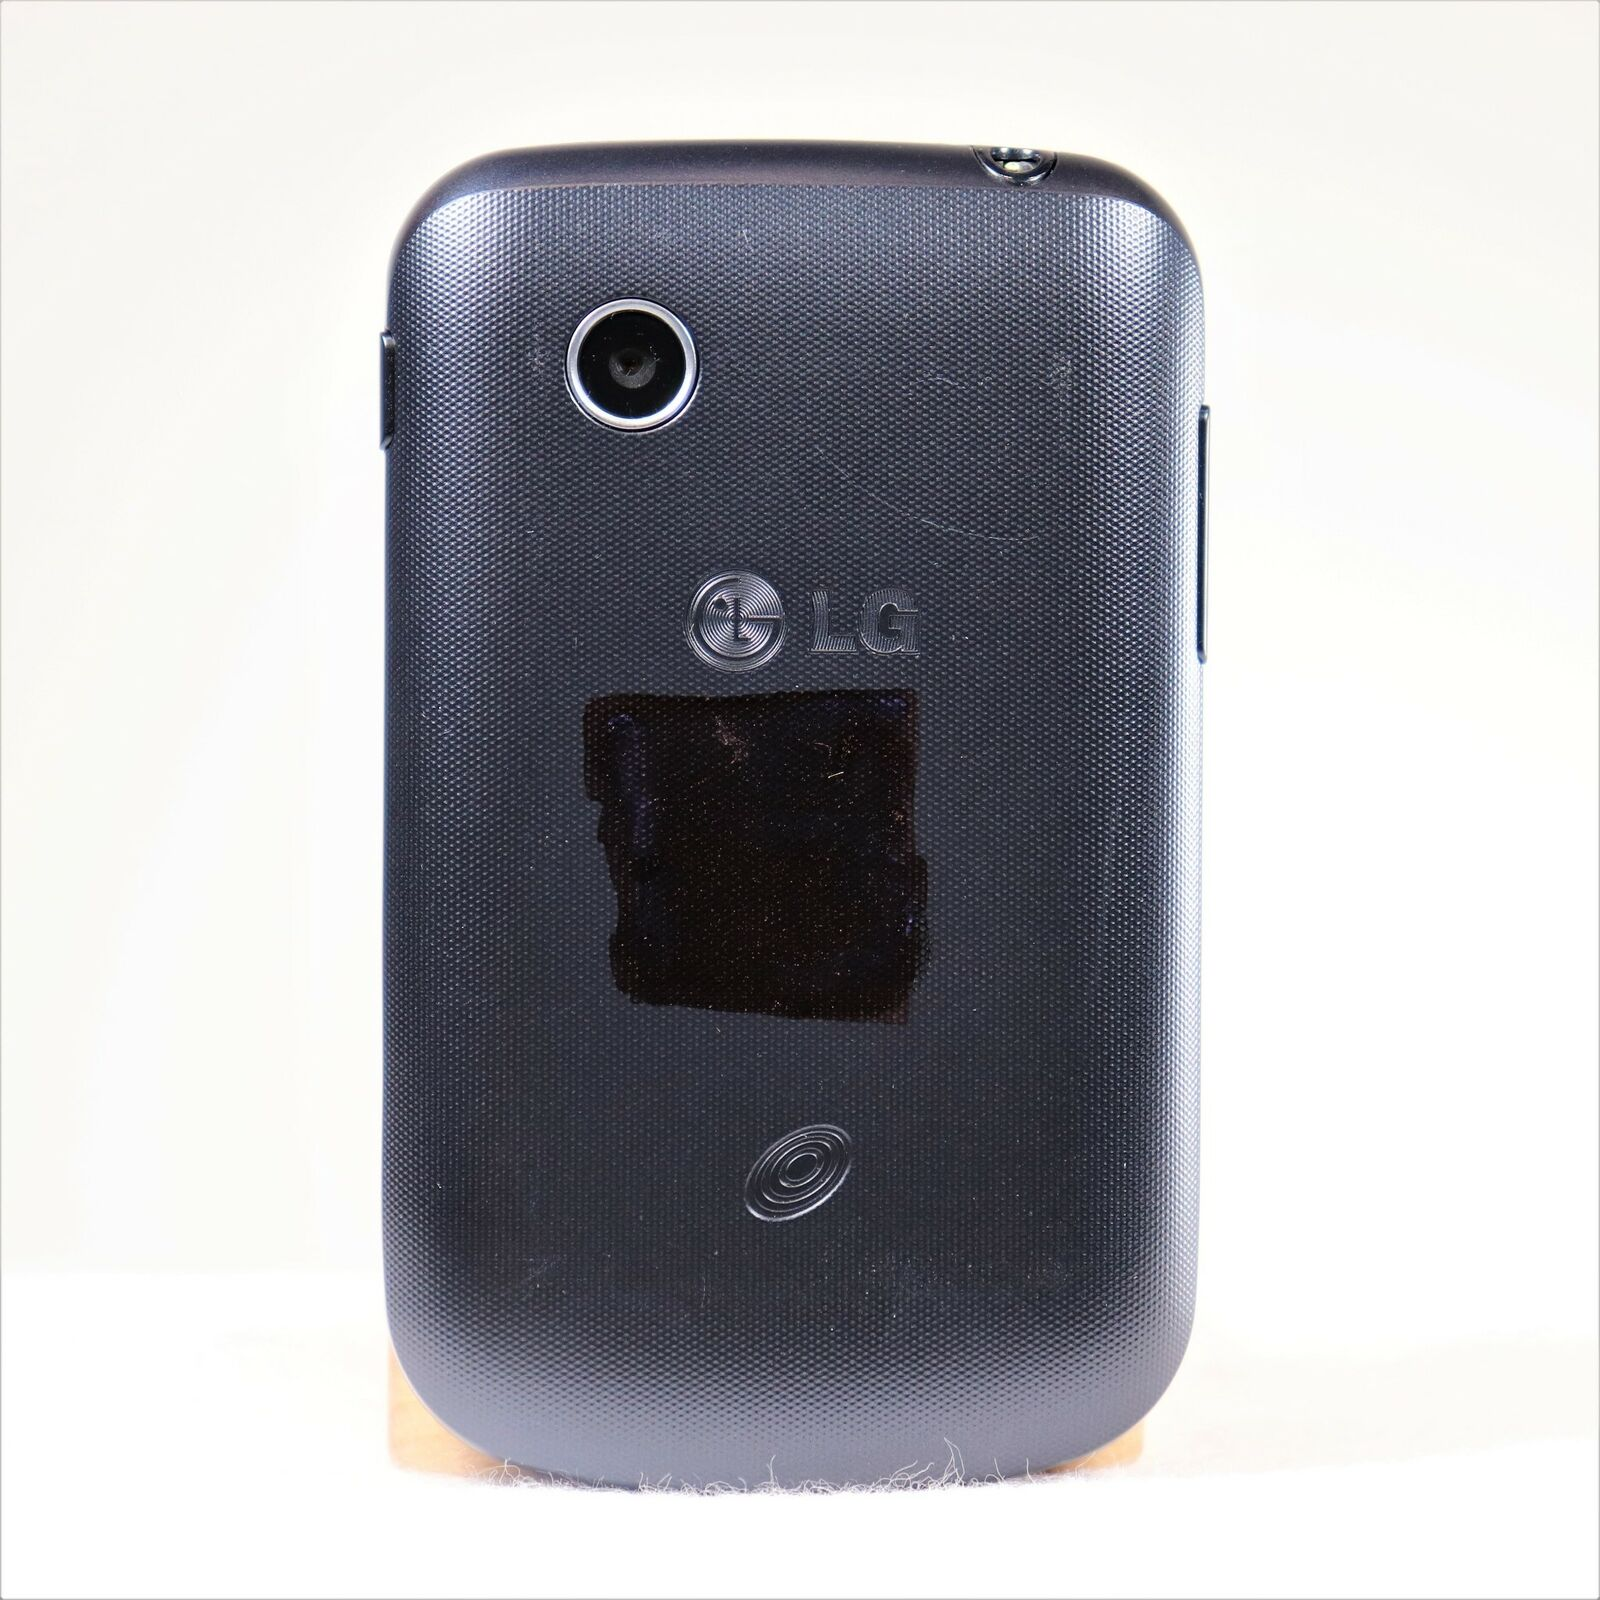 LG 306G Tracfone Smartphone - No Contract - Easy to Use Friendly - Touchscreen